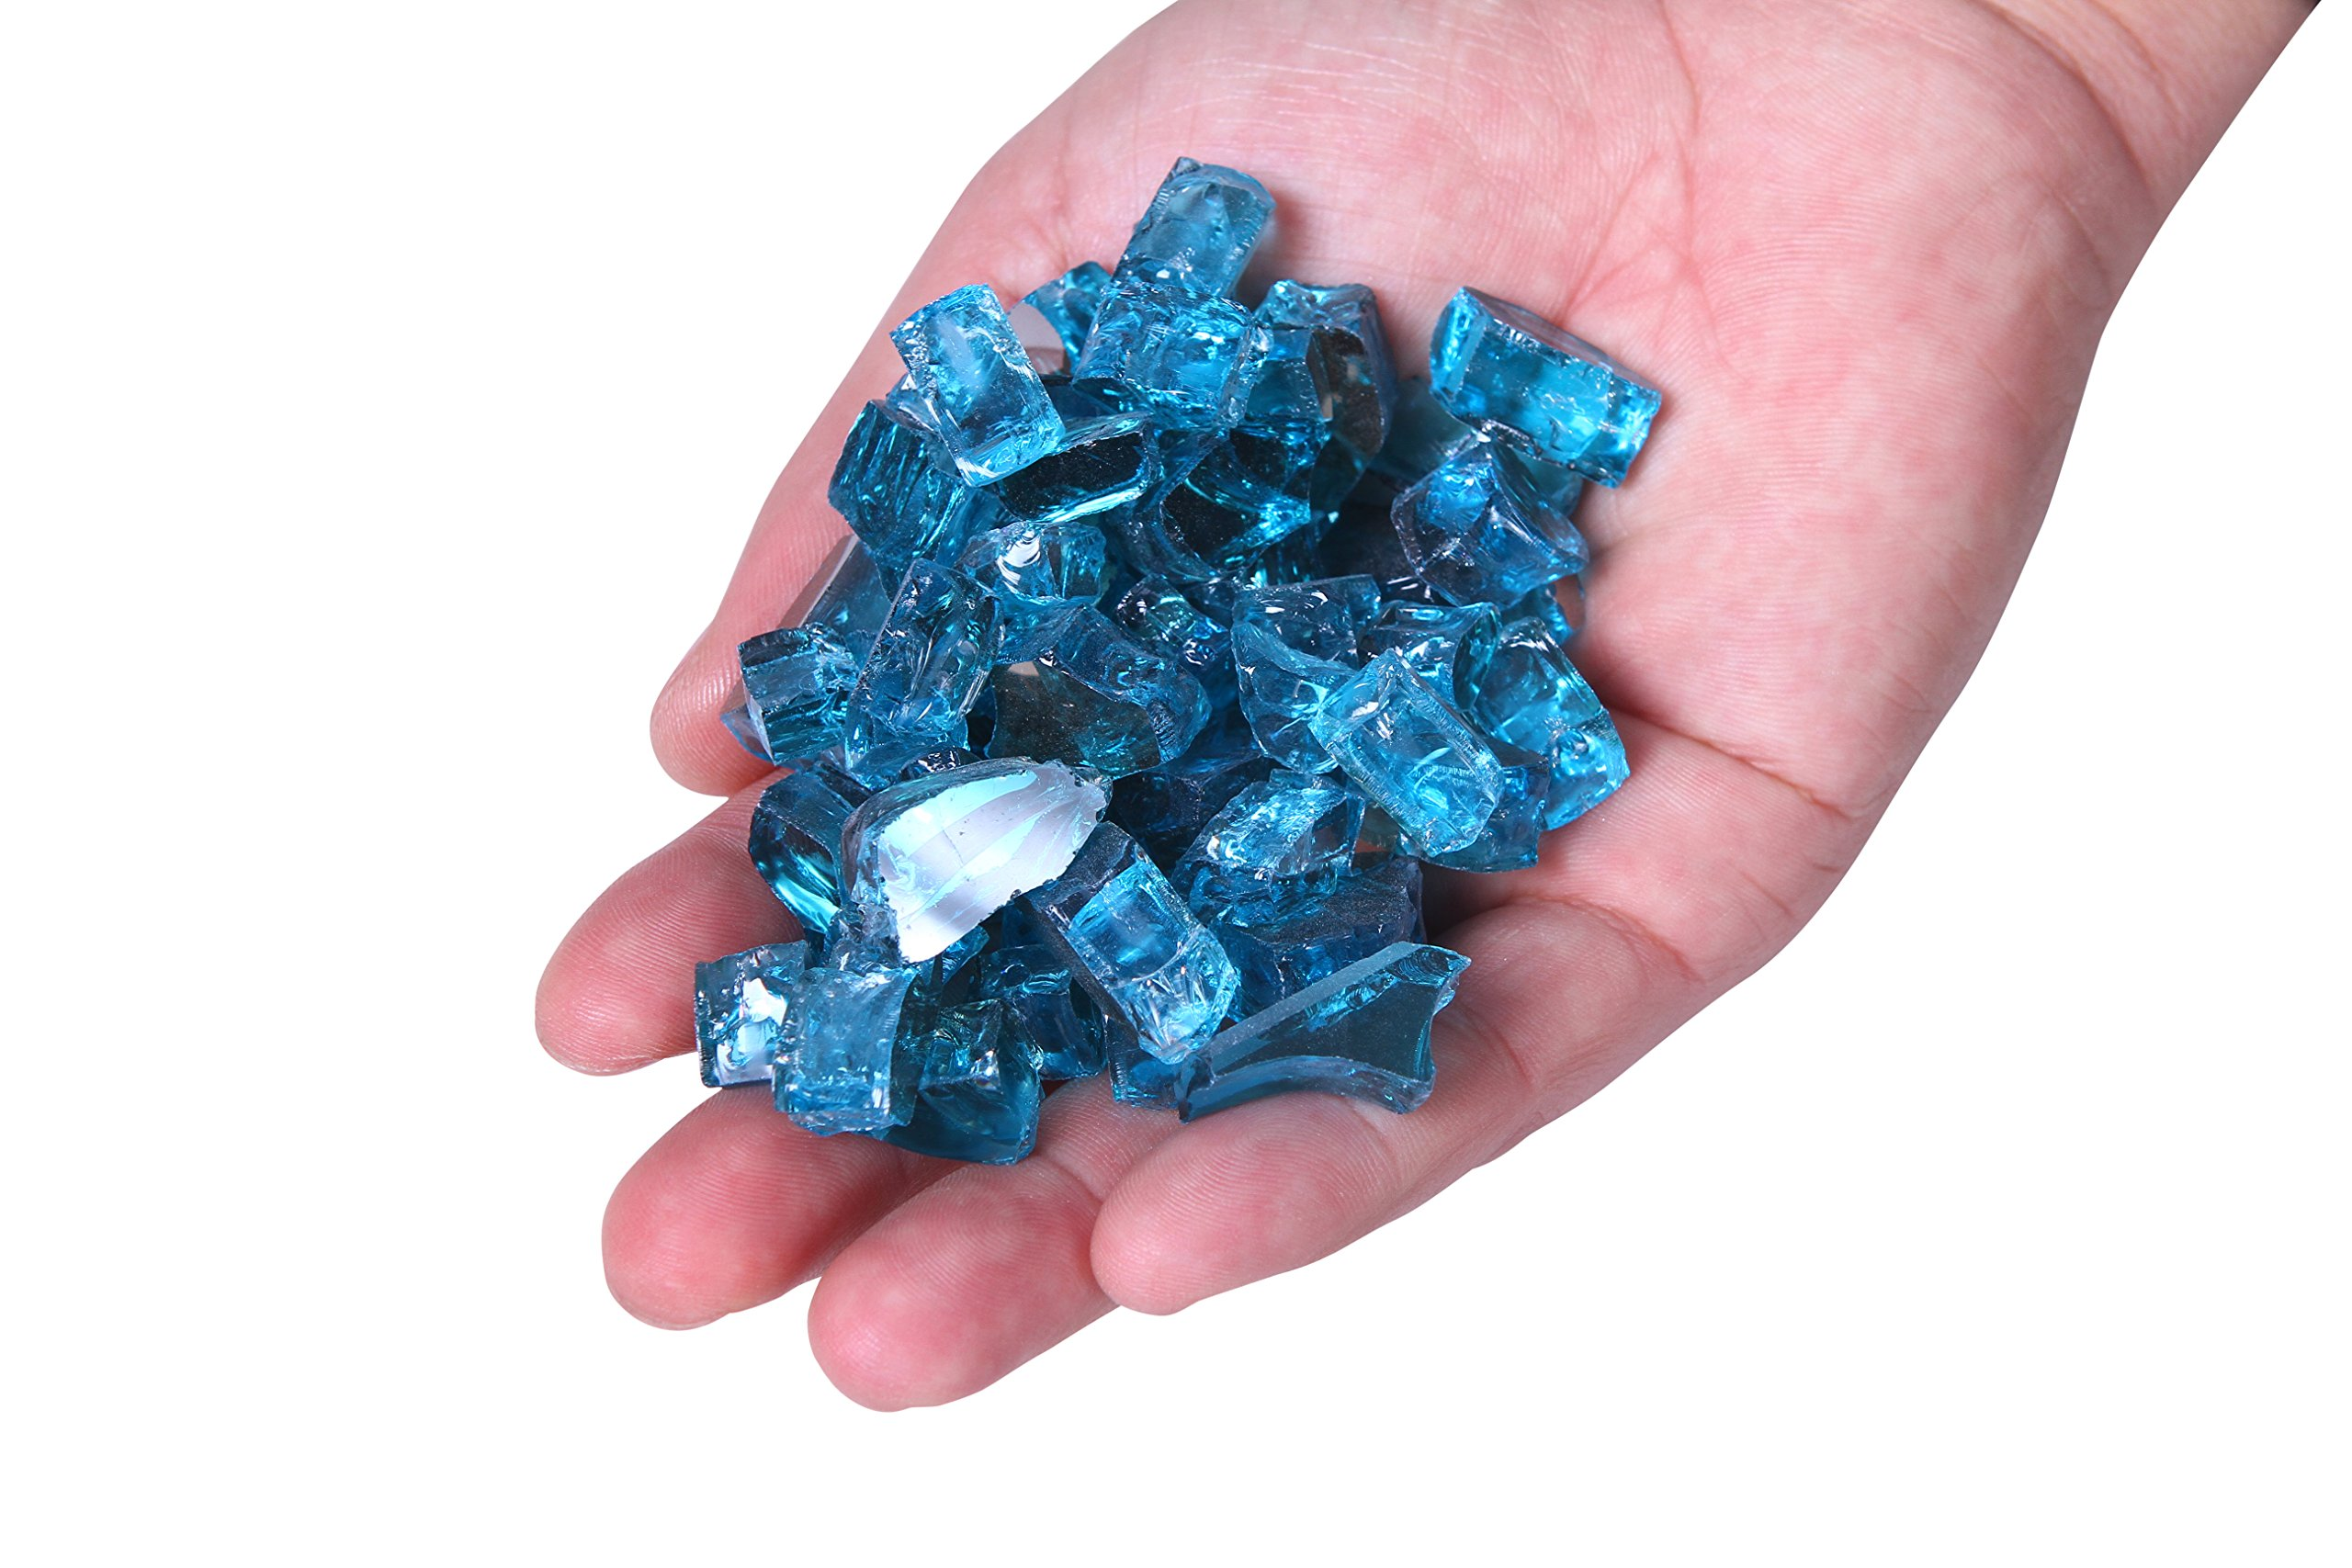 Century Modern Outdoor Fire Glass For Fire Pit,Reflective Tempered Fire Pit Glass For Fireplace,Fire Pit Table & Landscaping | Fire Glass Pebbles/Beads By 10 Pound (1/4''), Aque Blue Reflective